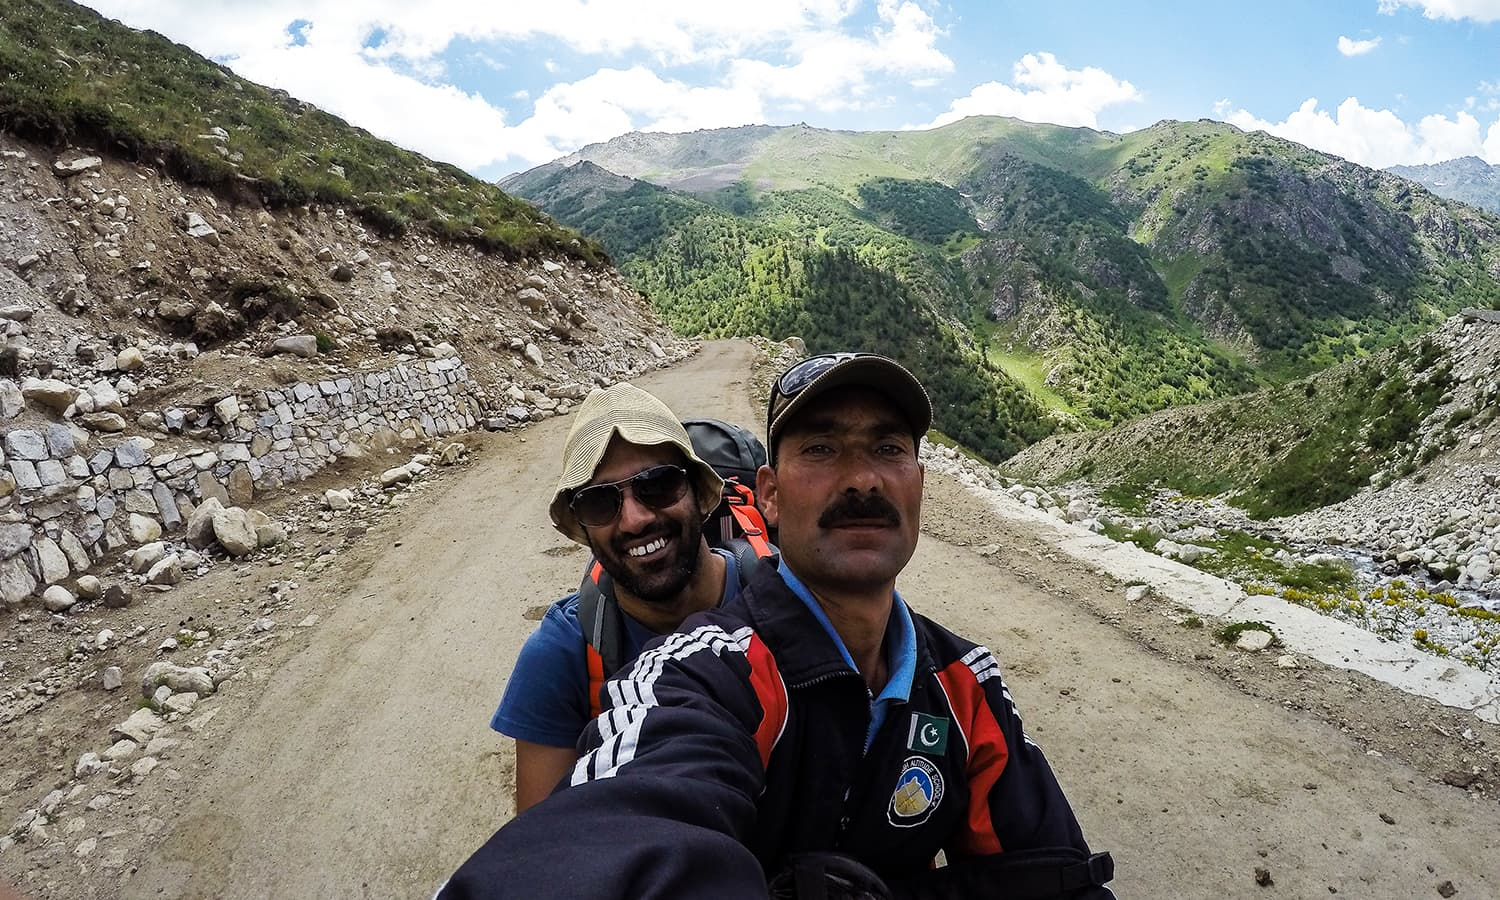 With Asghar Ali on his bike.